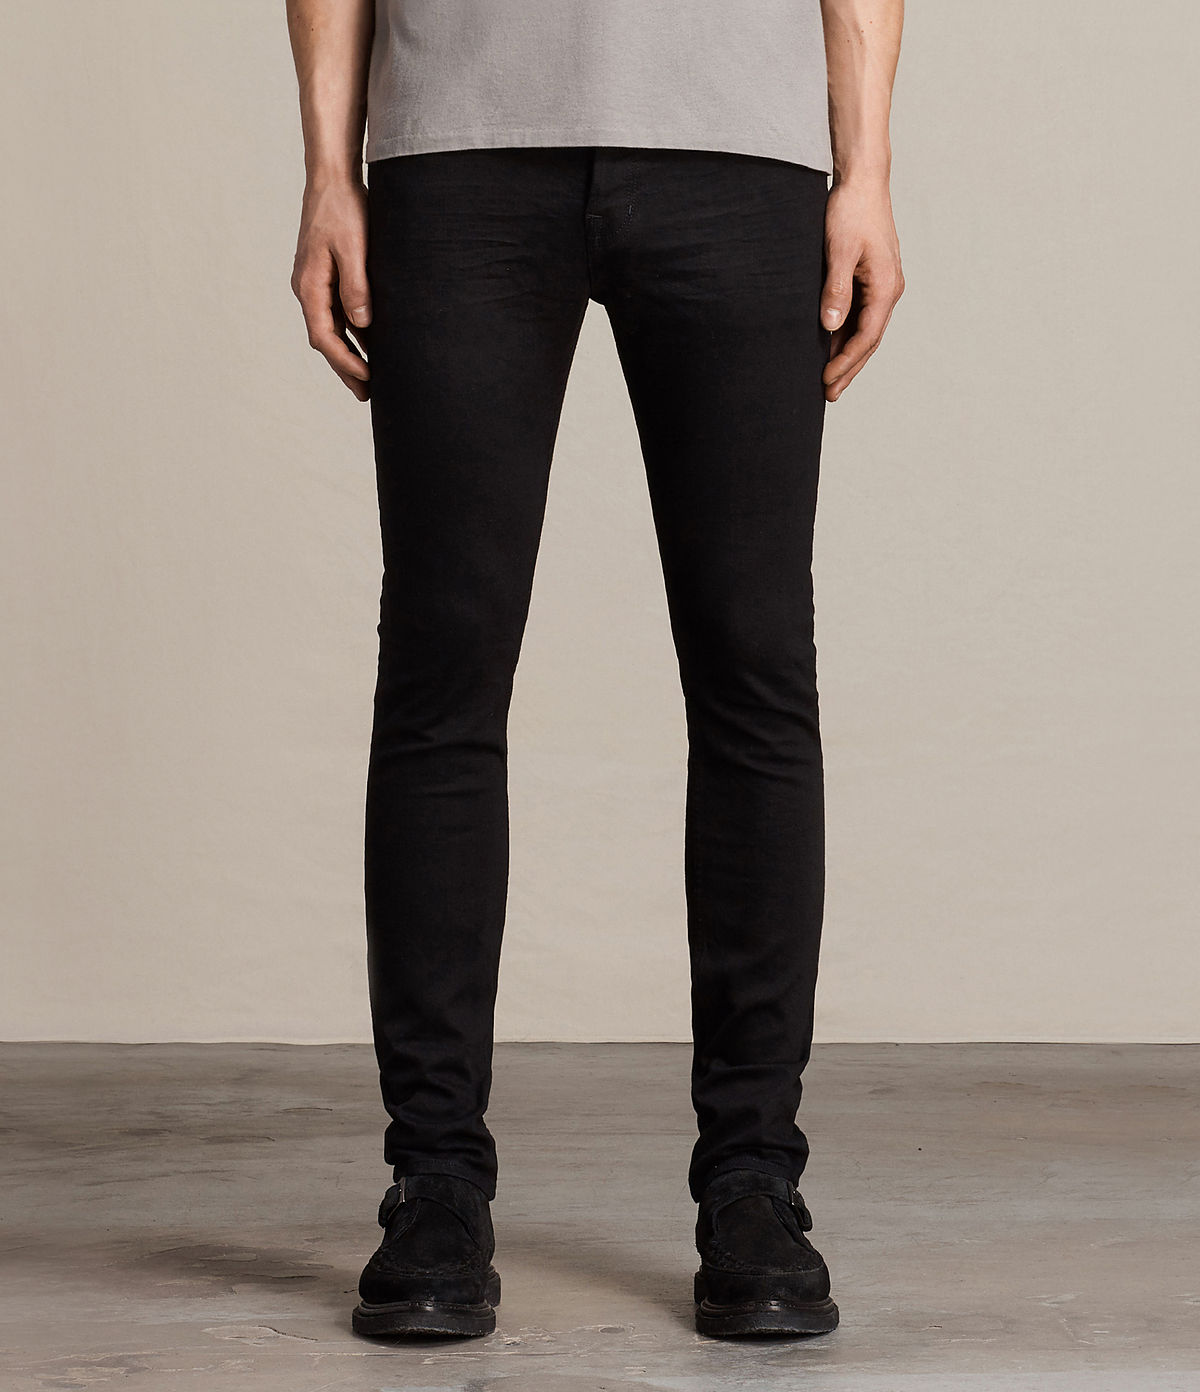 ALLSAINTS UK: Mens Crow Cigarette Jeans (Jet Black)